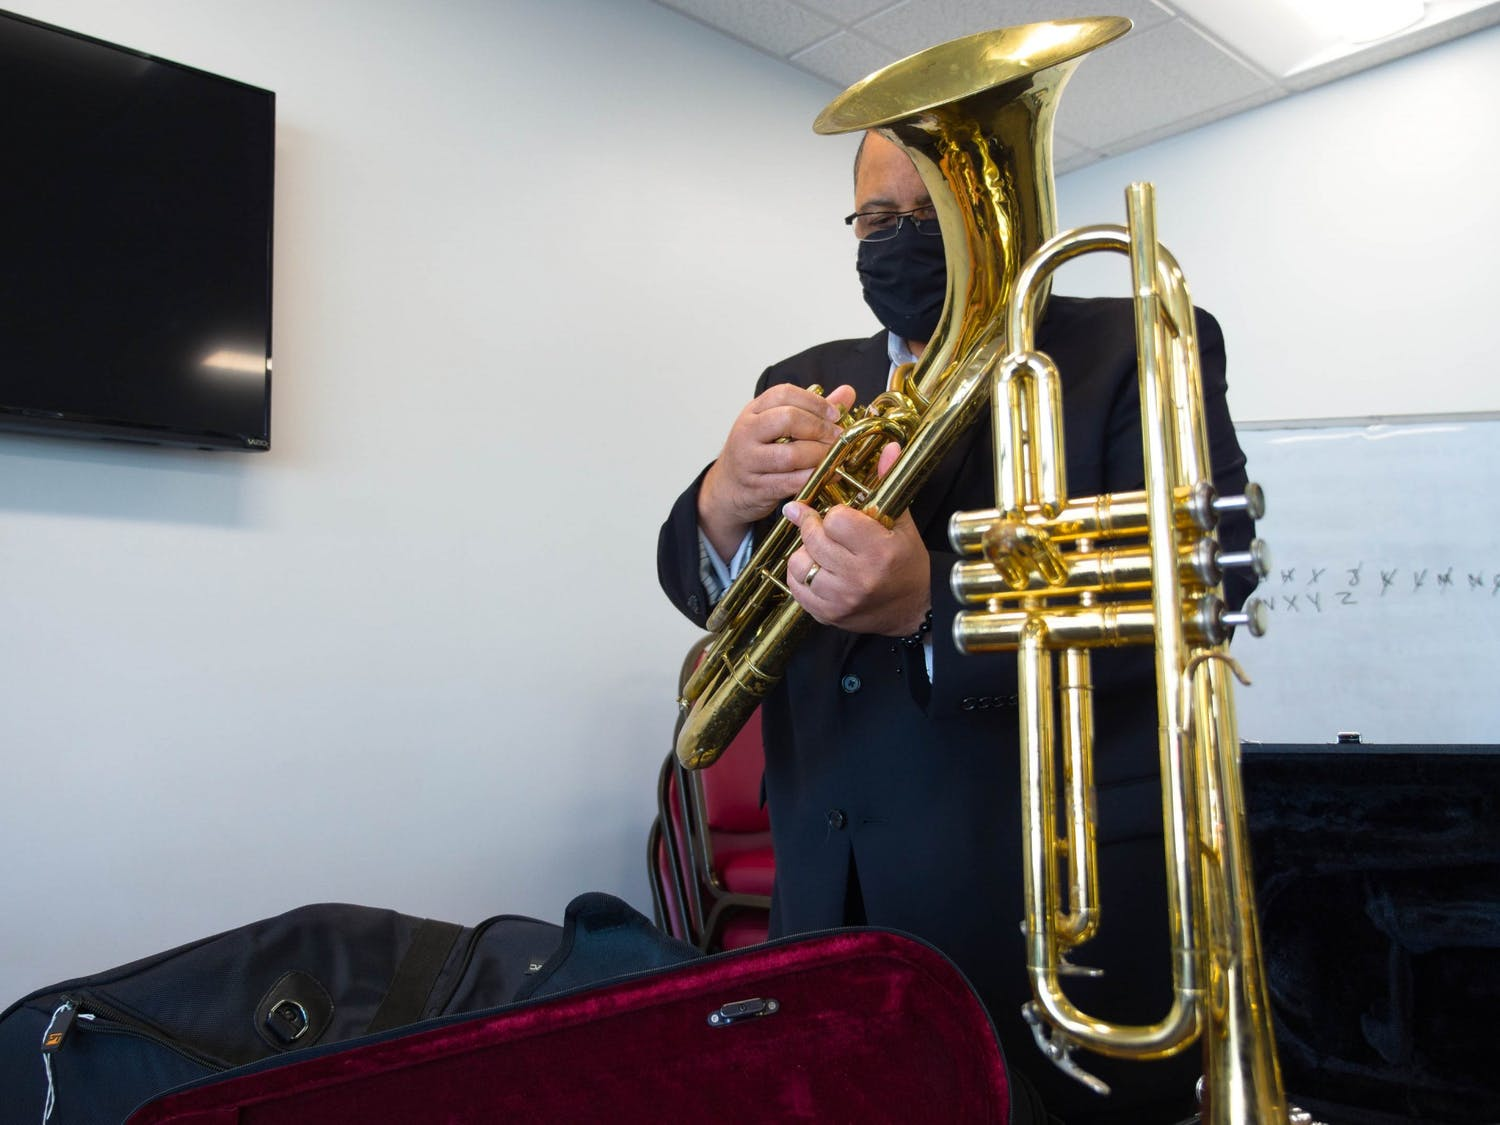 Ralph Barrett, an Assistant Professor of NC Central University's Music Department, checks the condition of the valves on a donated instrument in the YouthWorx conference room on Wednesday, Dec. 9, 2020. Barrett is a member of Musical Empowerment's Board of Directors.